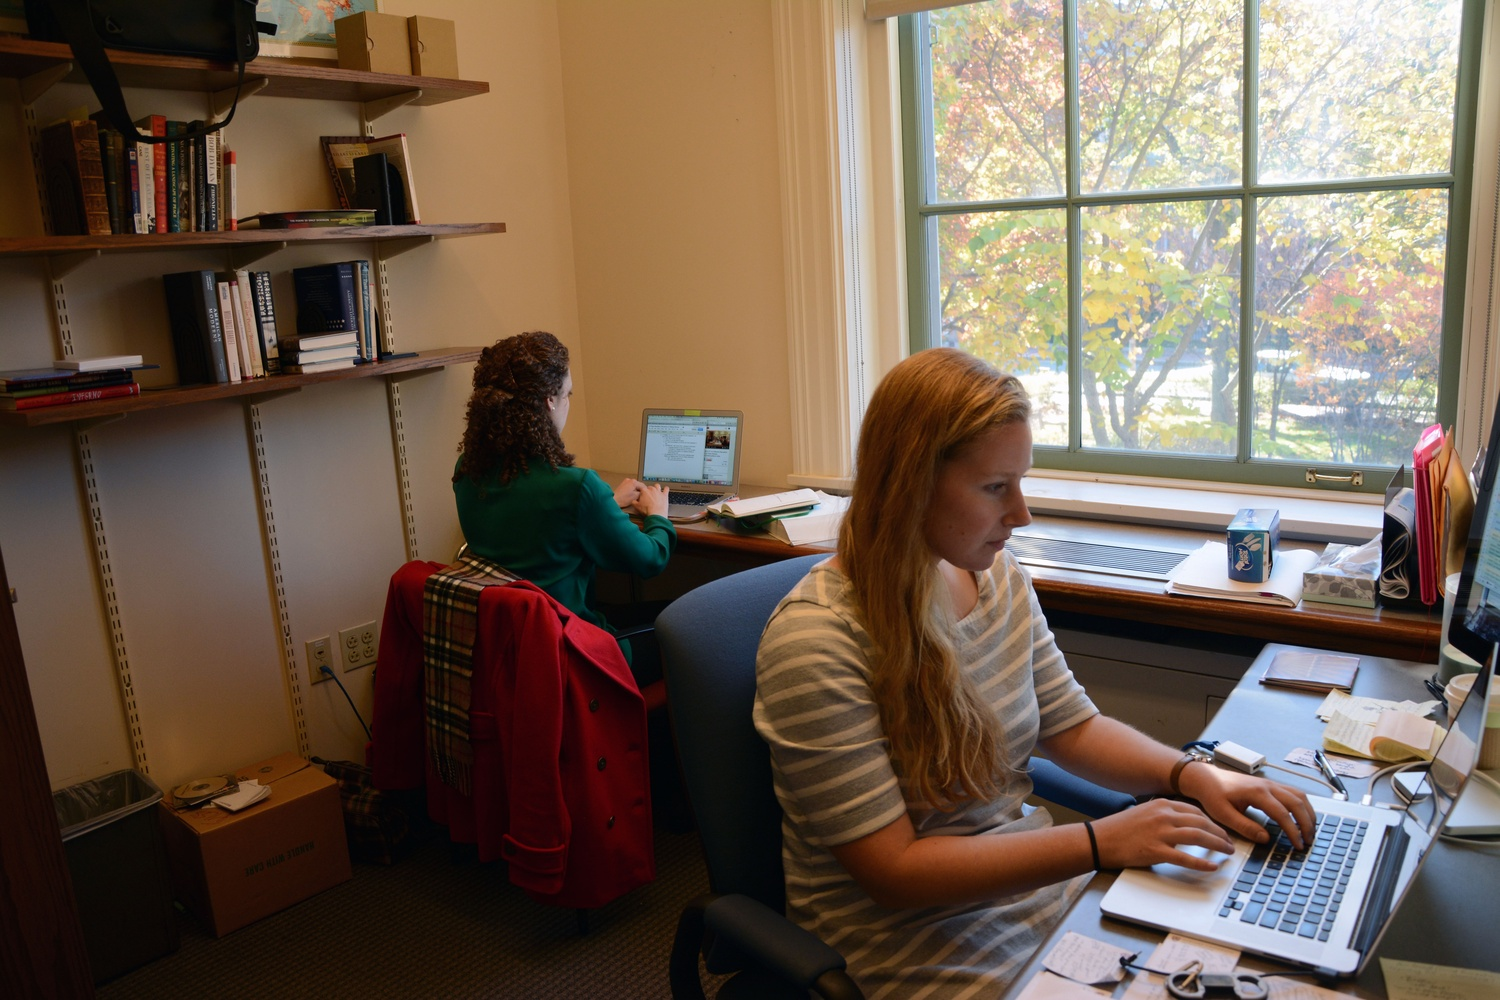 """Leah Reis-Dennis '13 and Caitlin M. Ballotta '14 work in the """"Poetry in America"""" office at the Barker Center. Their day-to-day work ranges from close reading poems to coordinating legal agreements with artists' estates."""